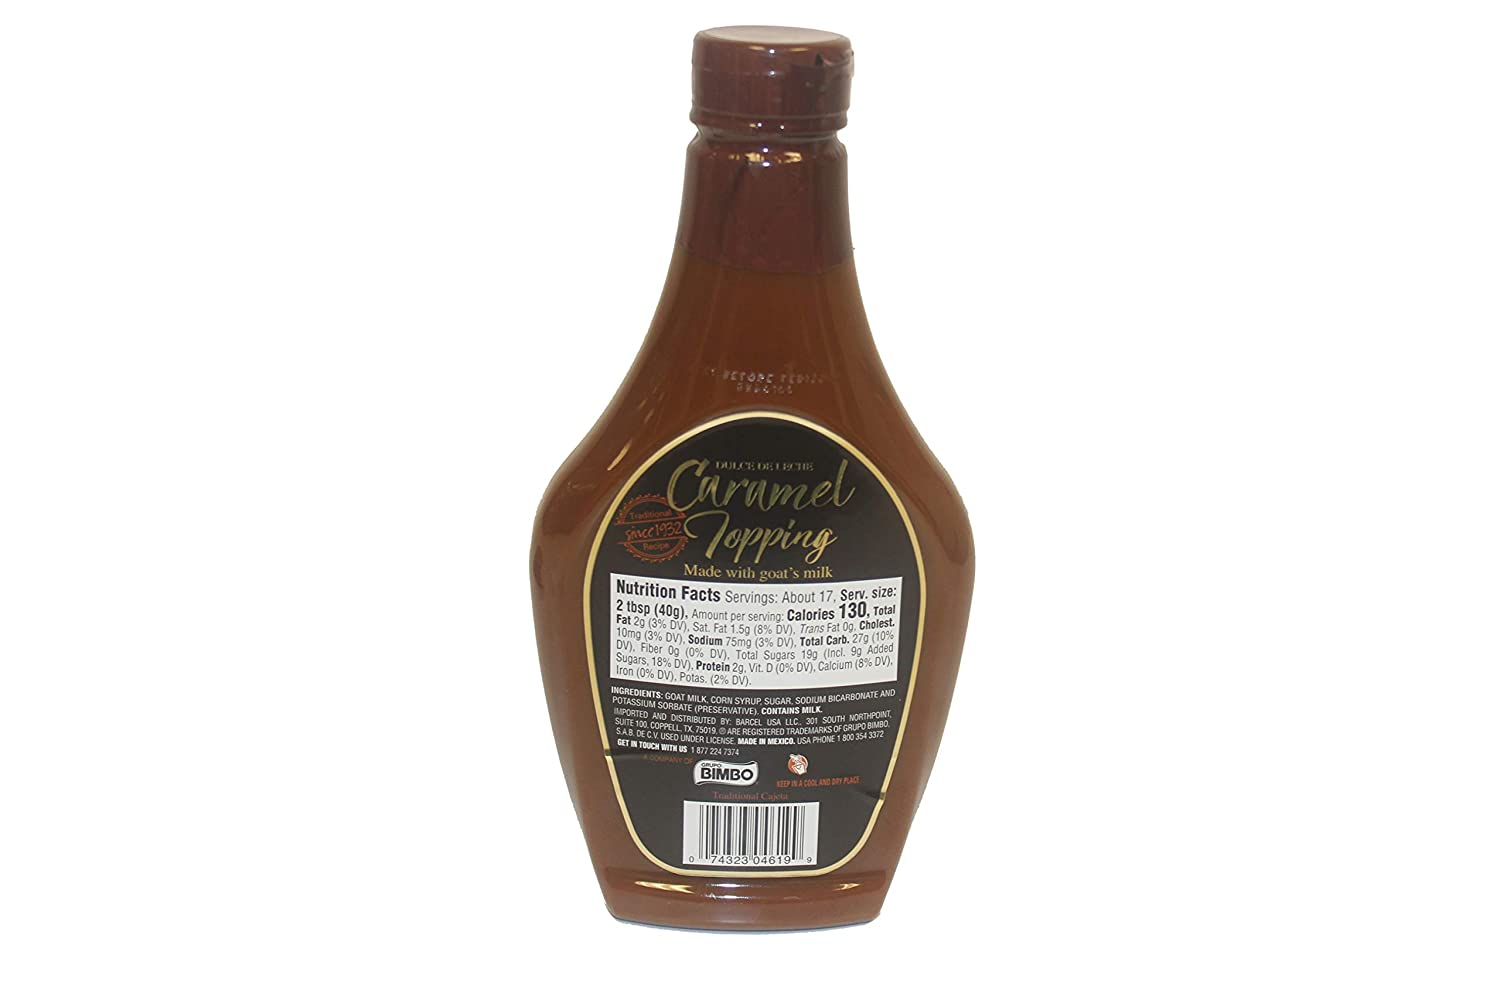 Amazon.com : CORONADO Dulce de Leche Caramel Topping - Sweet Cajeta Sauce/Spread with Real Goat Milk - Squeezable Bottle, 23.3oz (Cinnamon) : Grocery ...